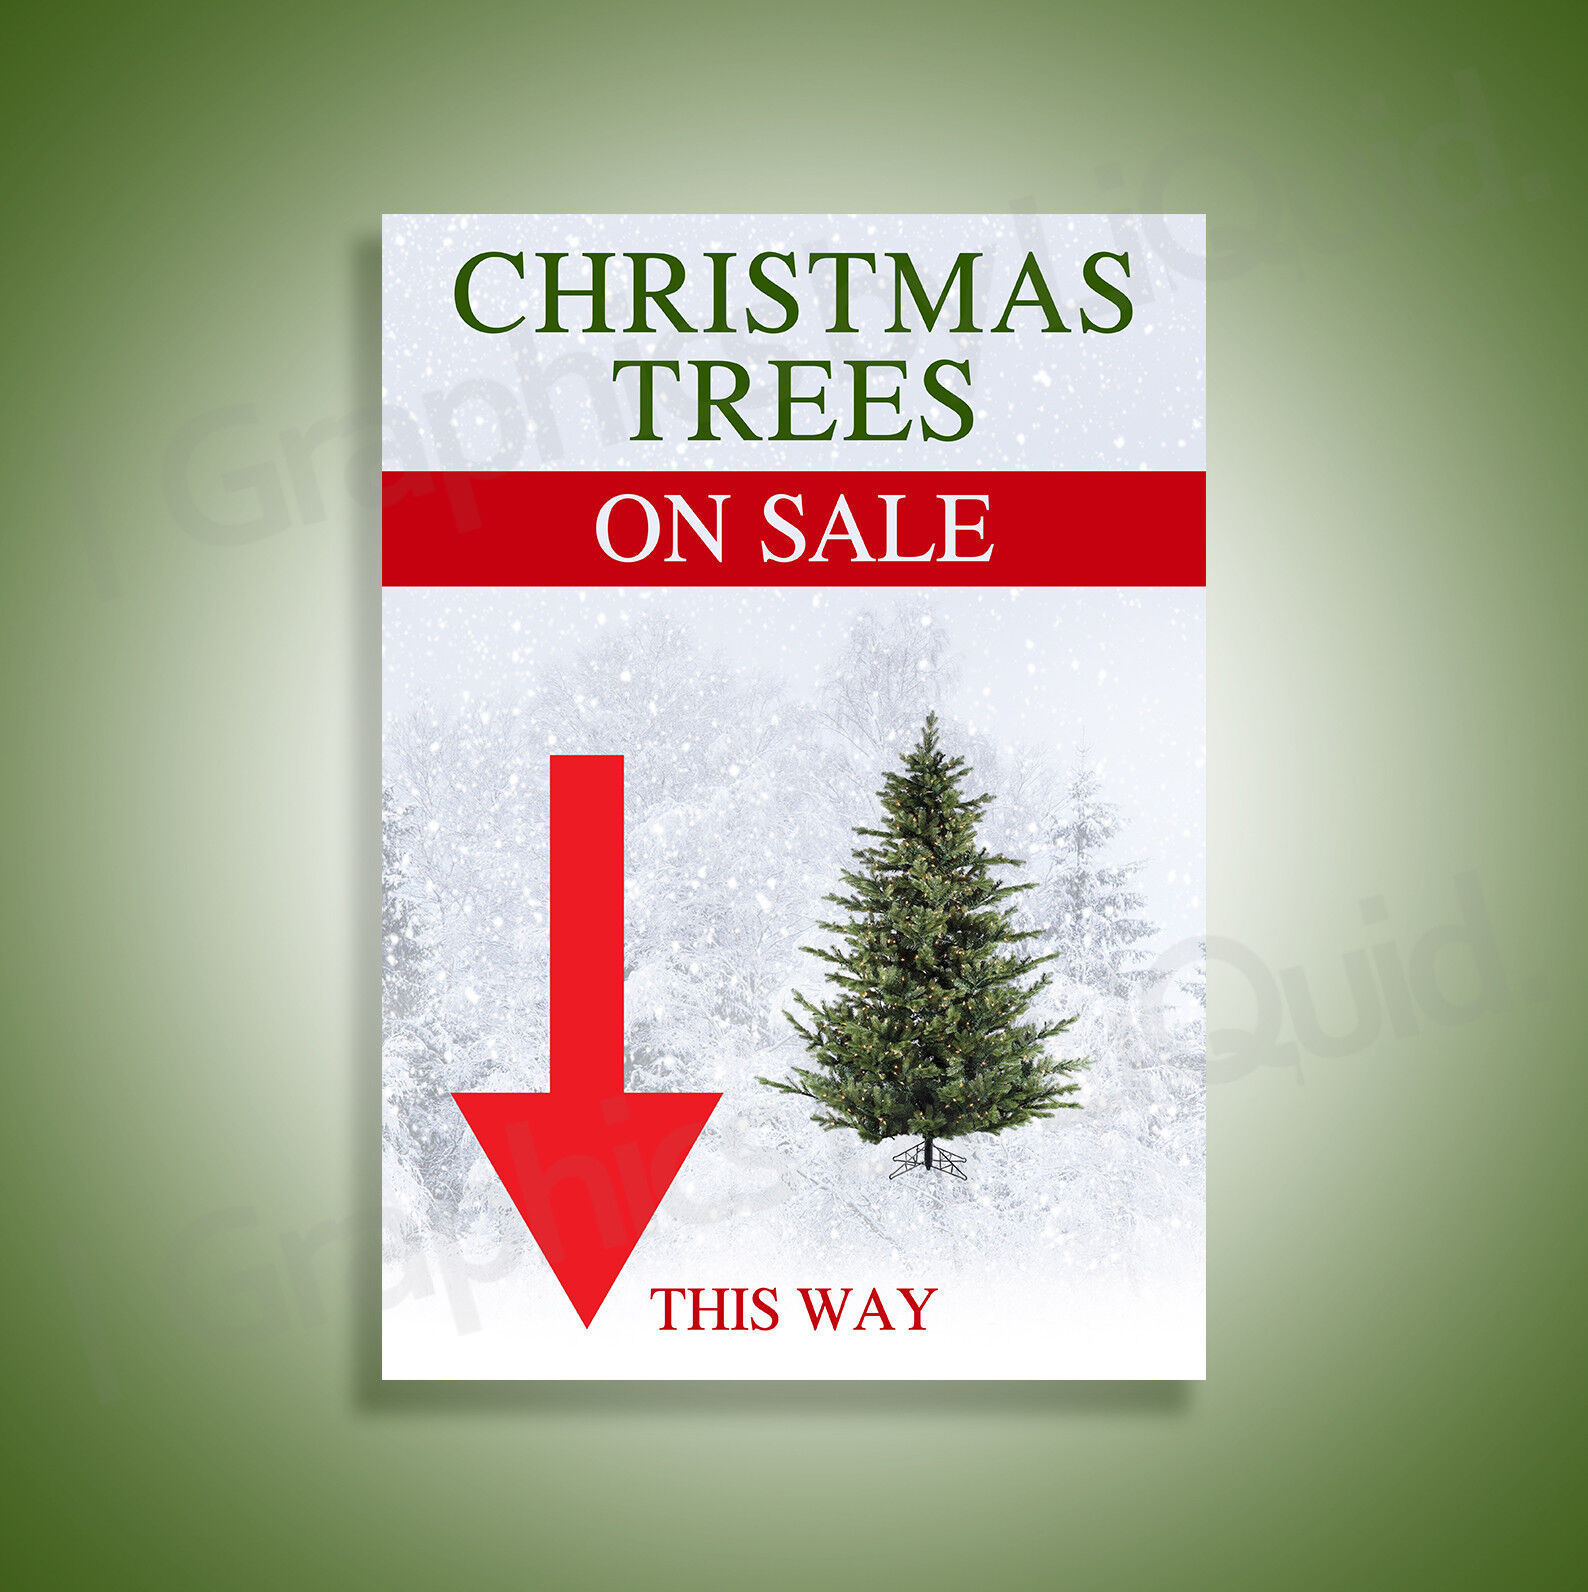 Christmas Xmas Trees w Arrow FOR SALE HERE Left Right Straight Signs A3 A2 A1